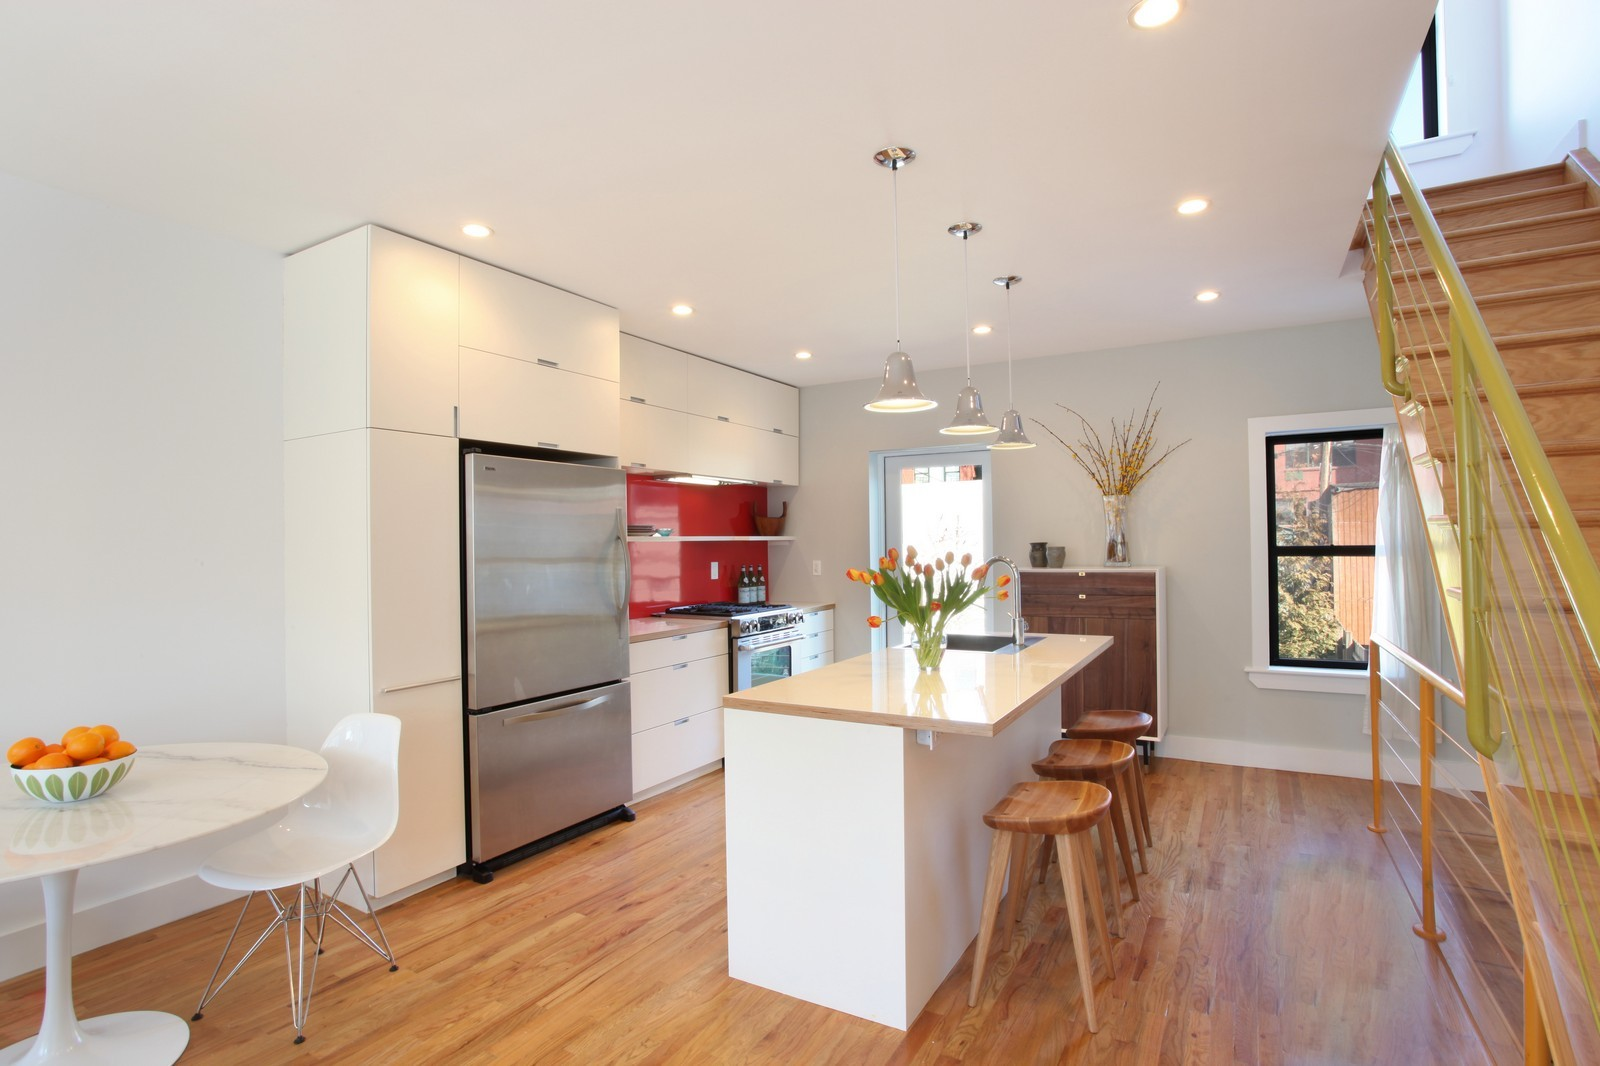 Real Estate Photography - 116 Pioneer Street, Brooklyn, NY, 11231 - Kitchen